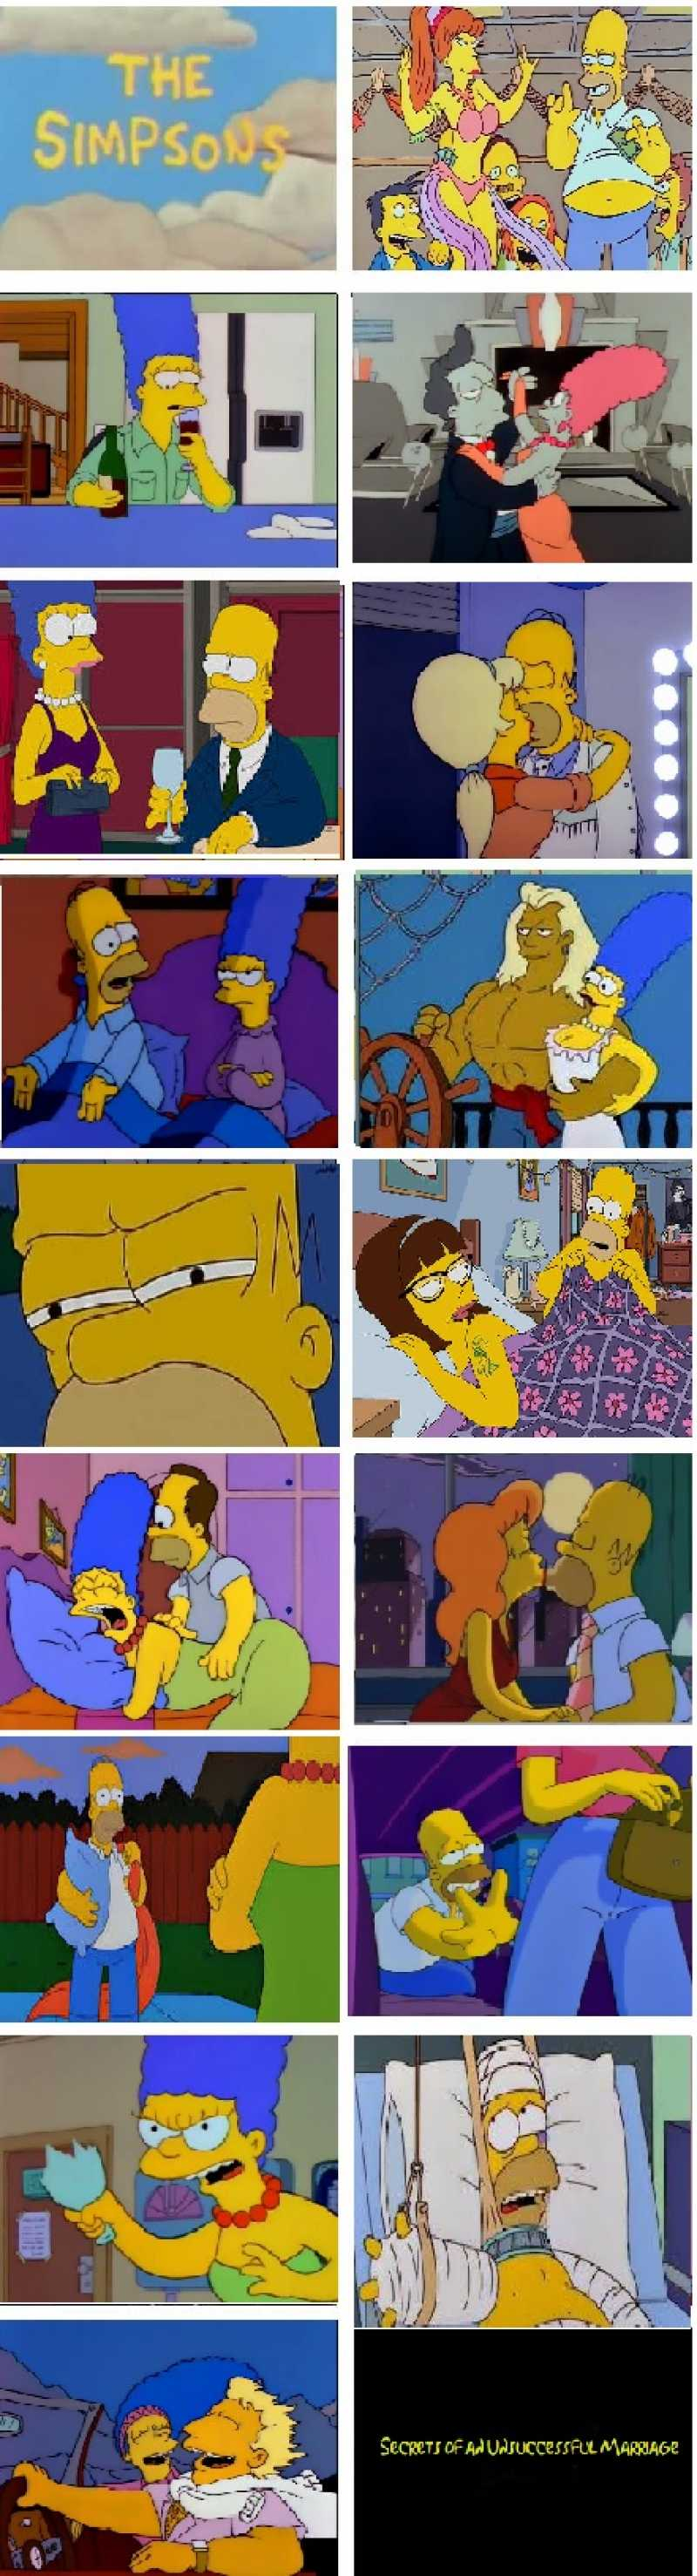 Homer has never exactly been faithful, but even philandering Marge has her limits.